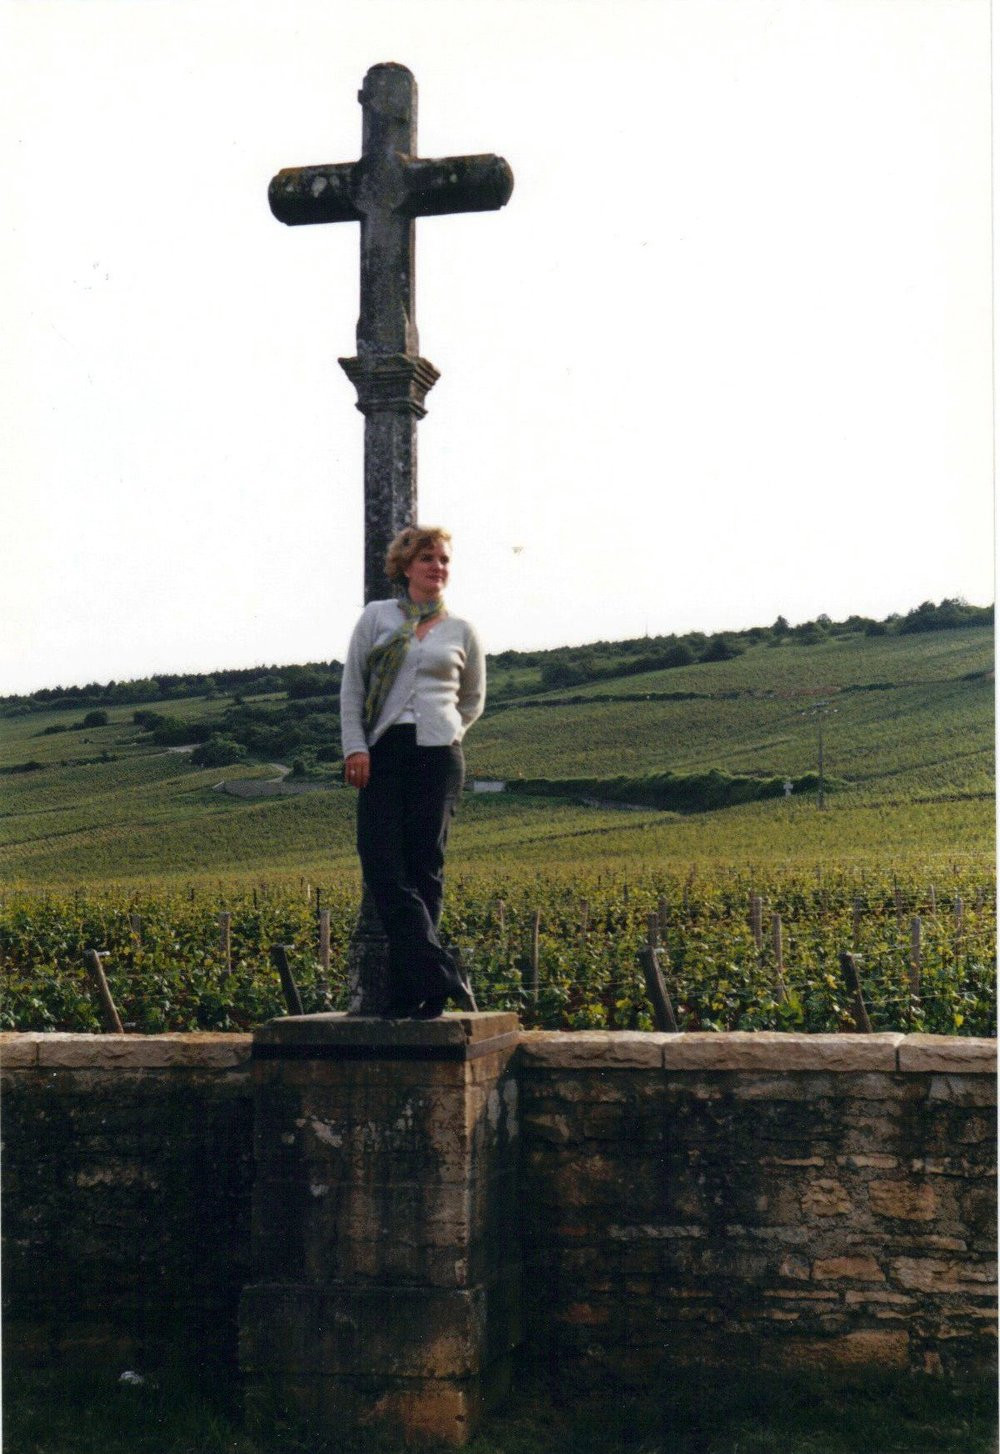 Kimberly Charles on a previous trip to the stunning region of Burgundy.